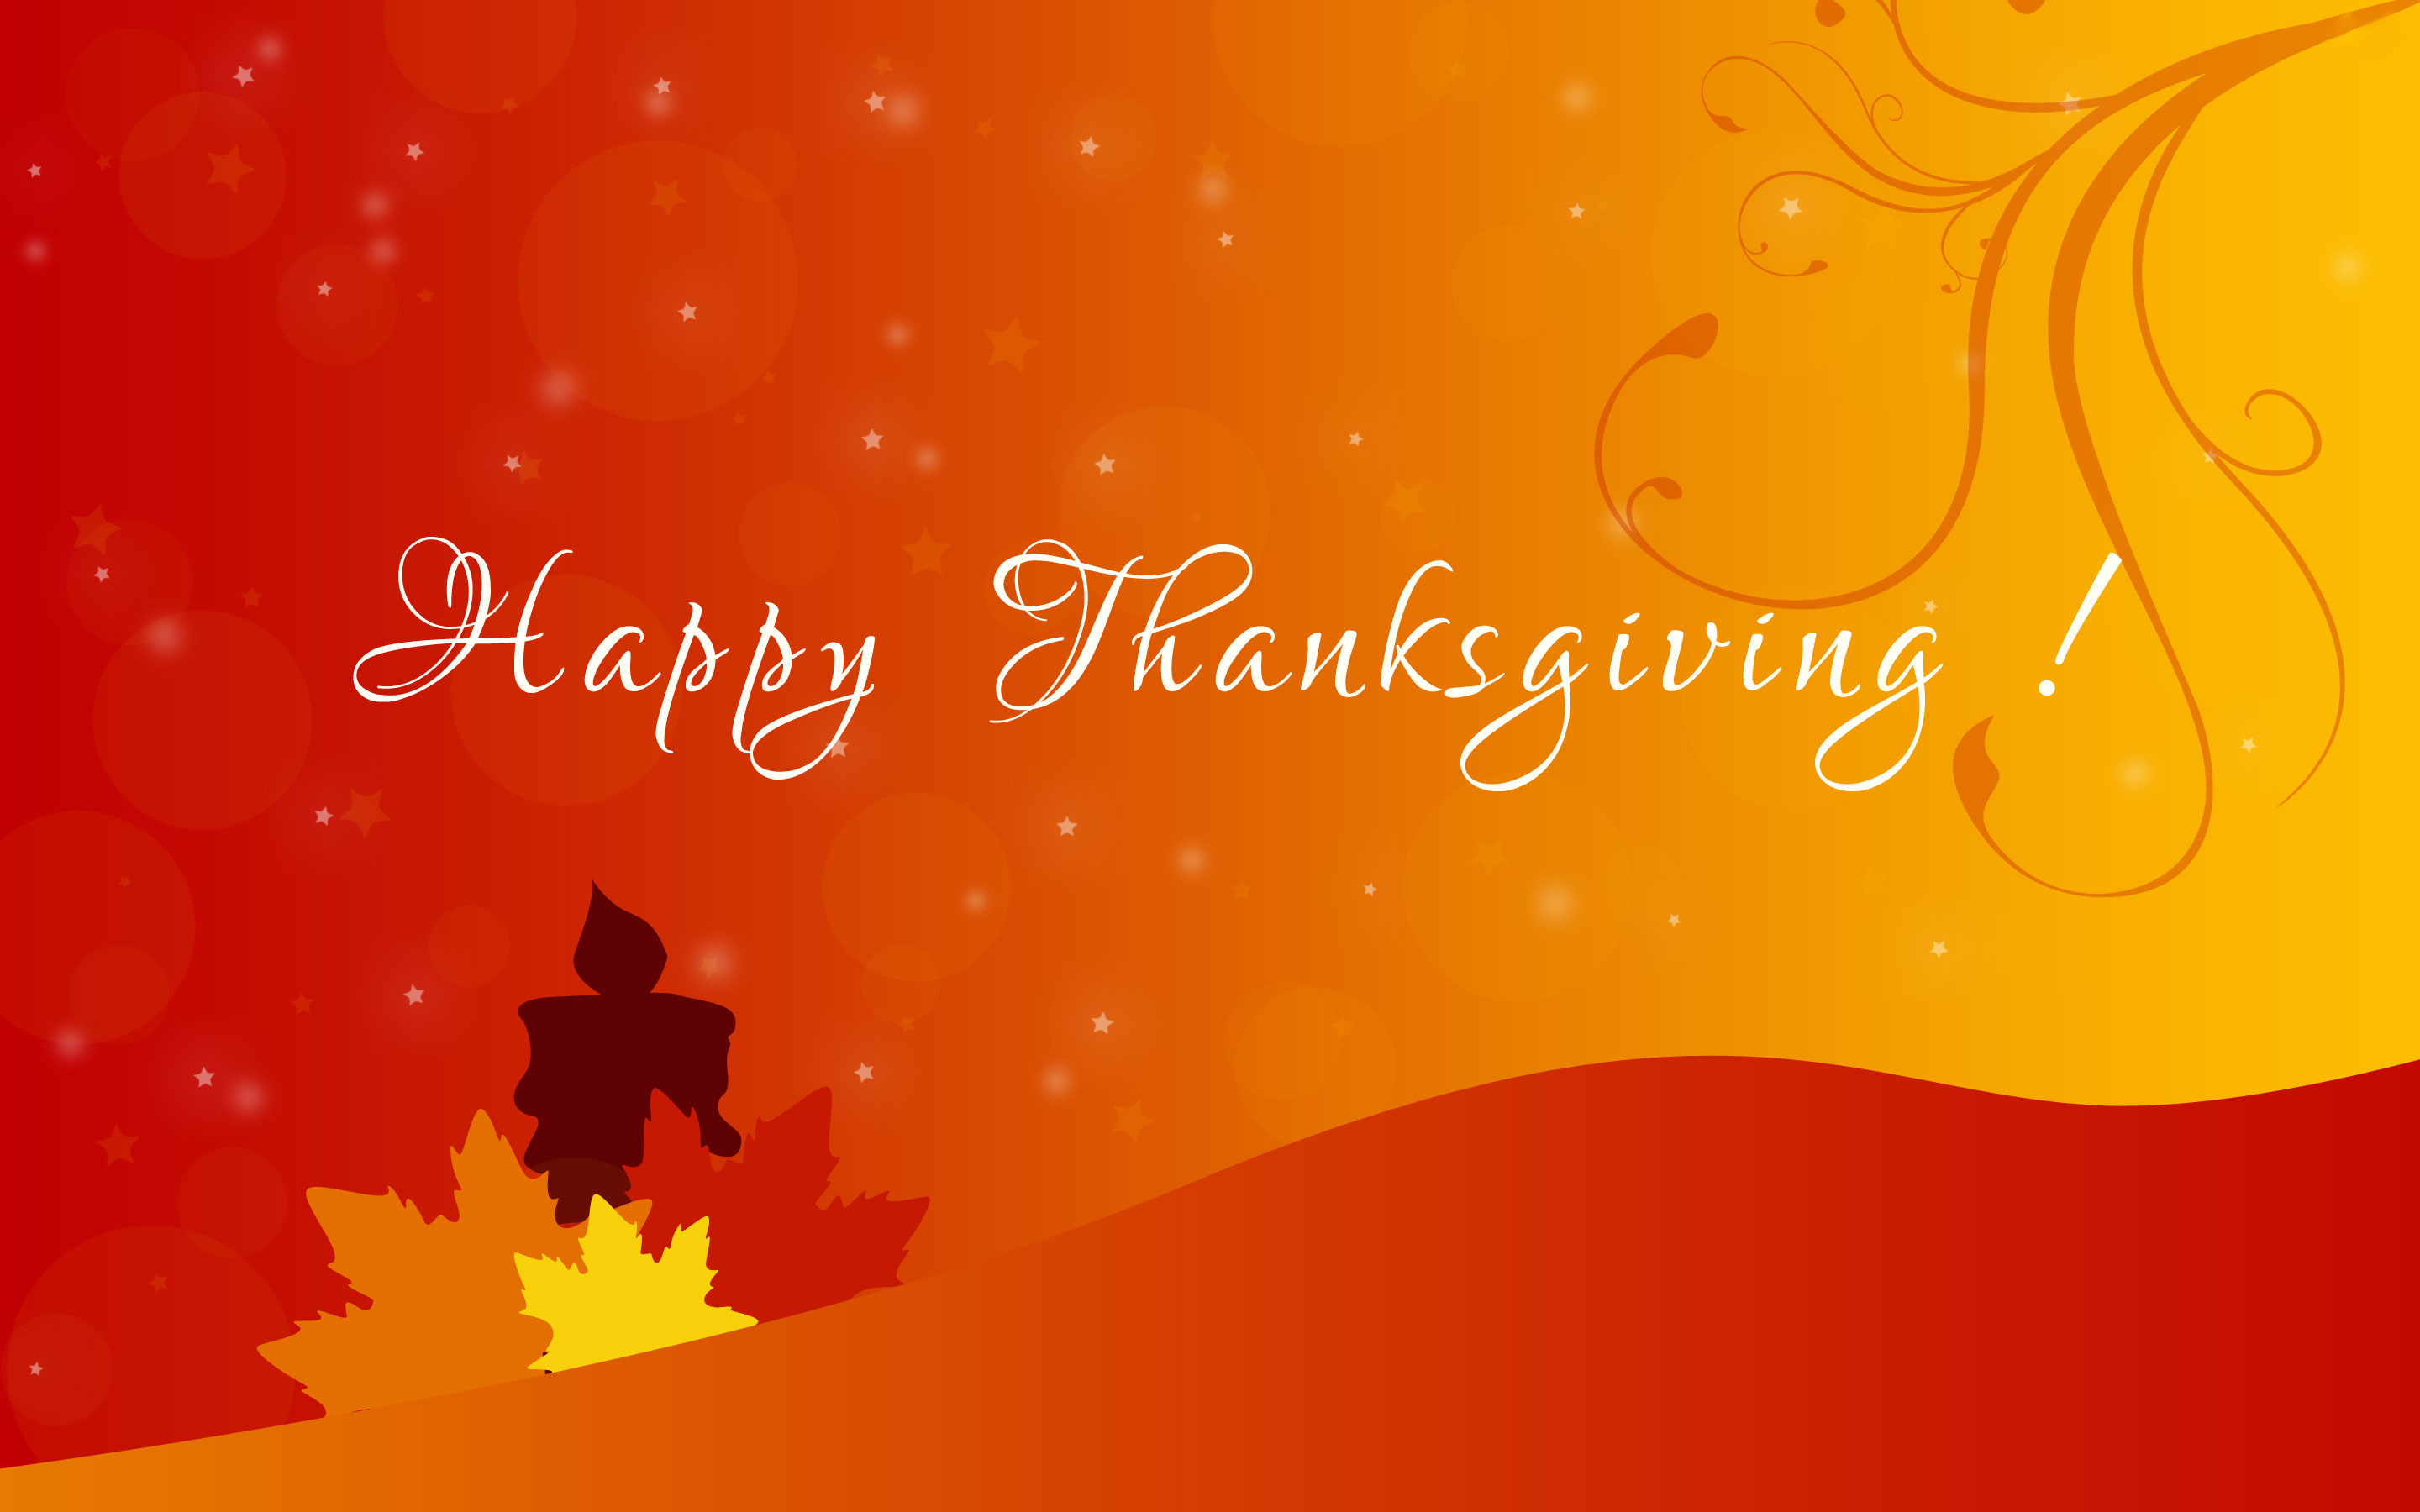 Thanksgiving Wallpapers HD 2018 2880x1800